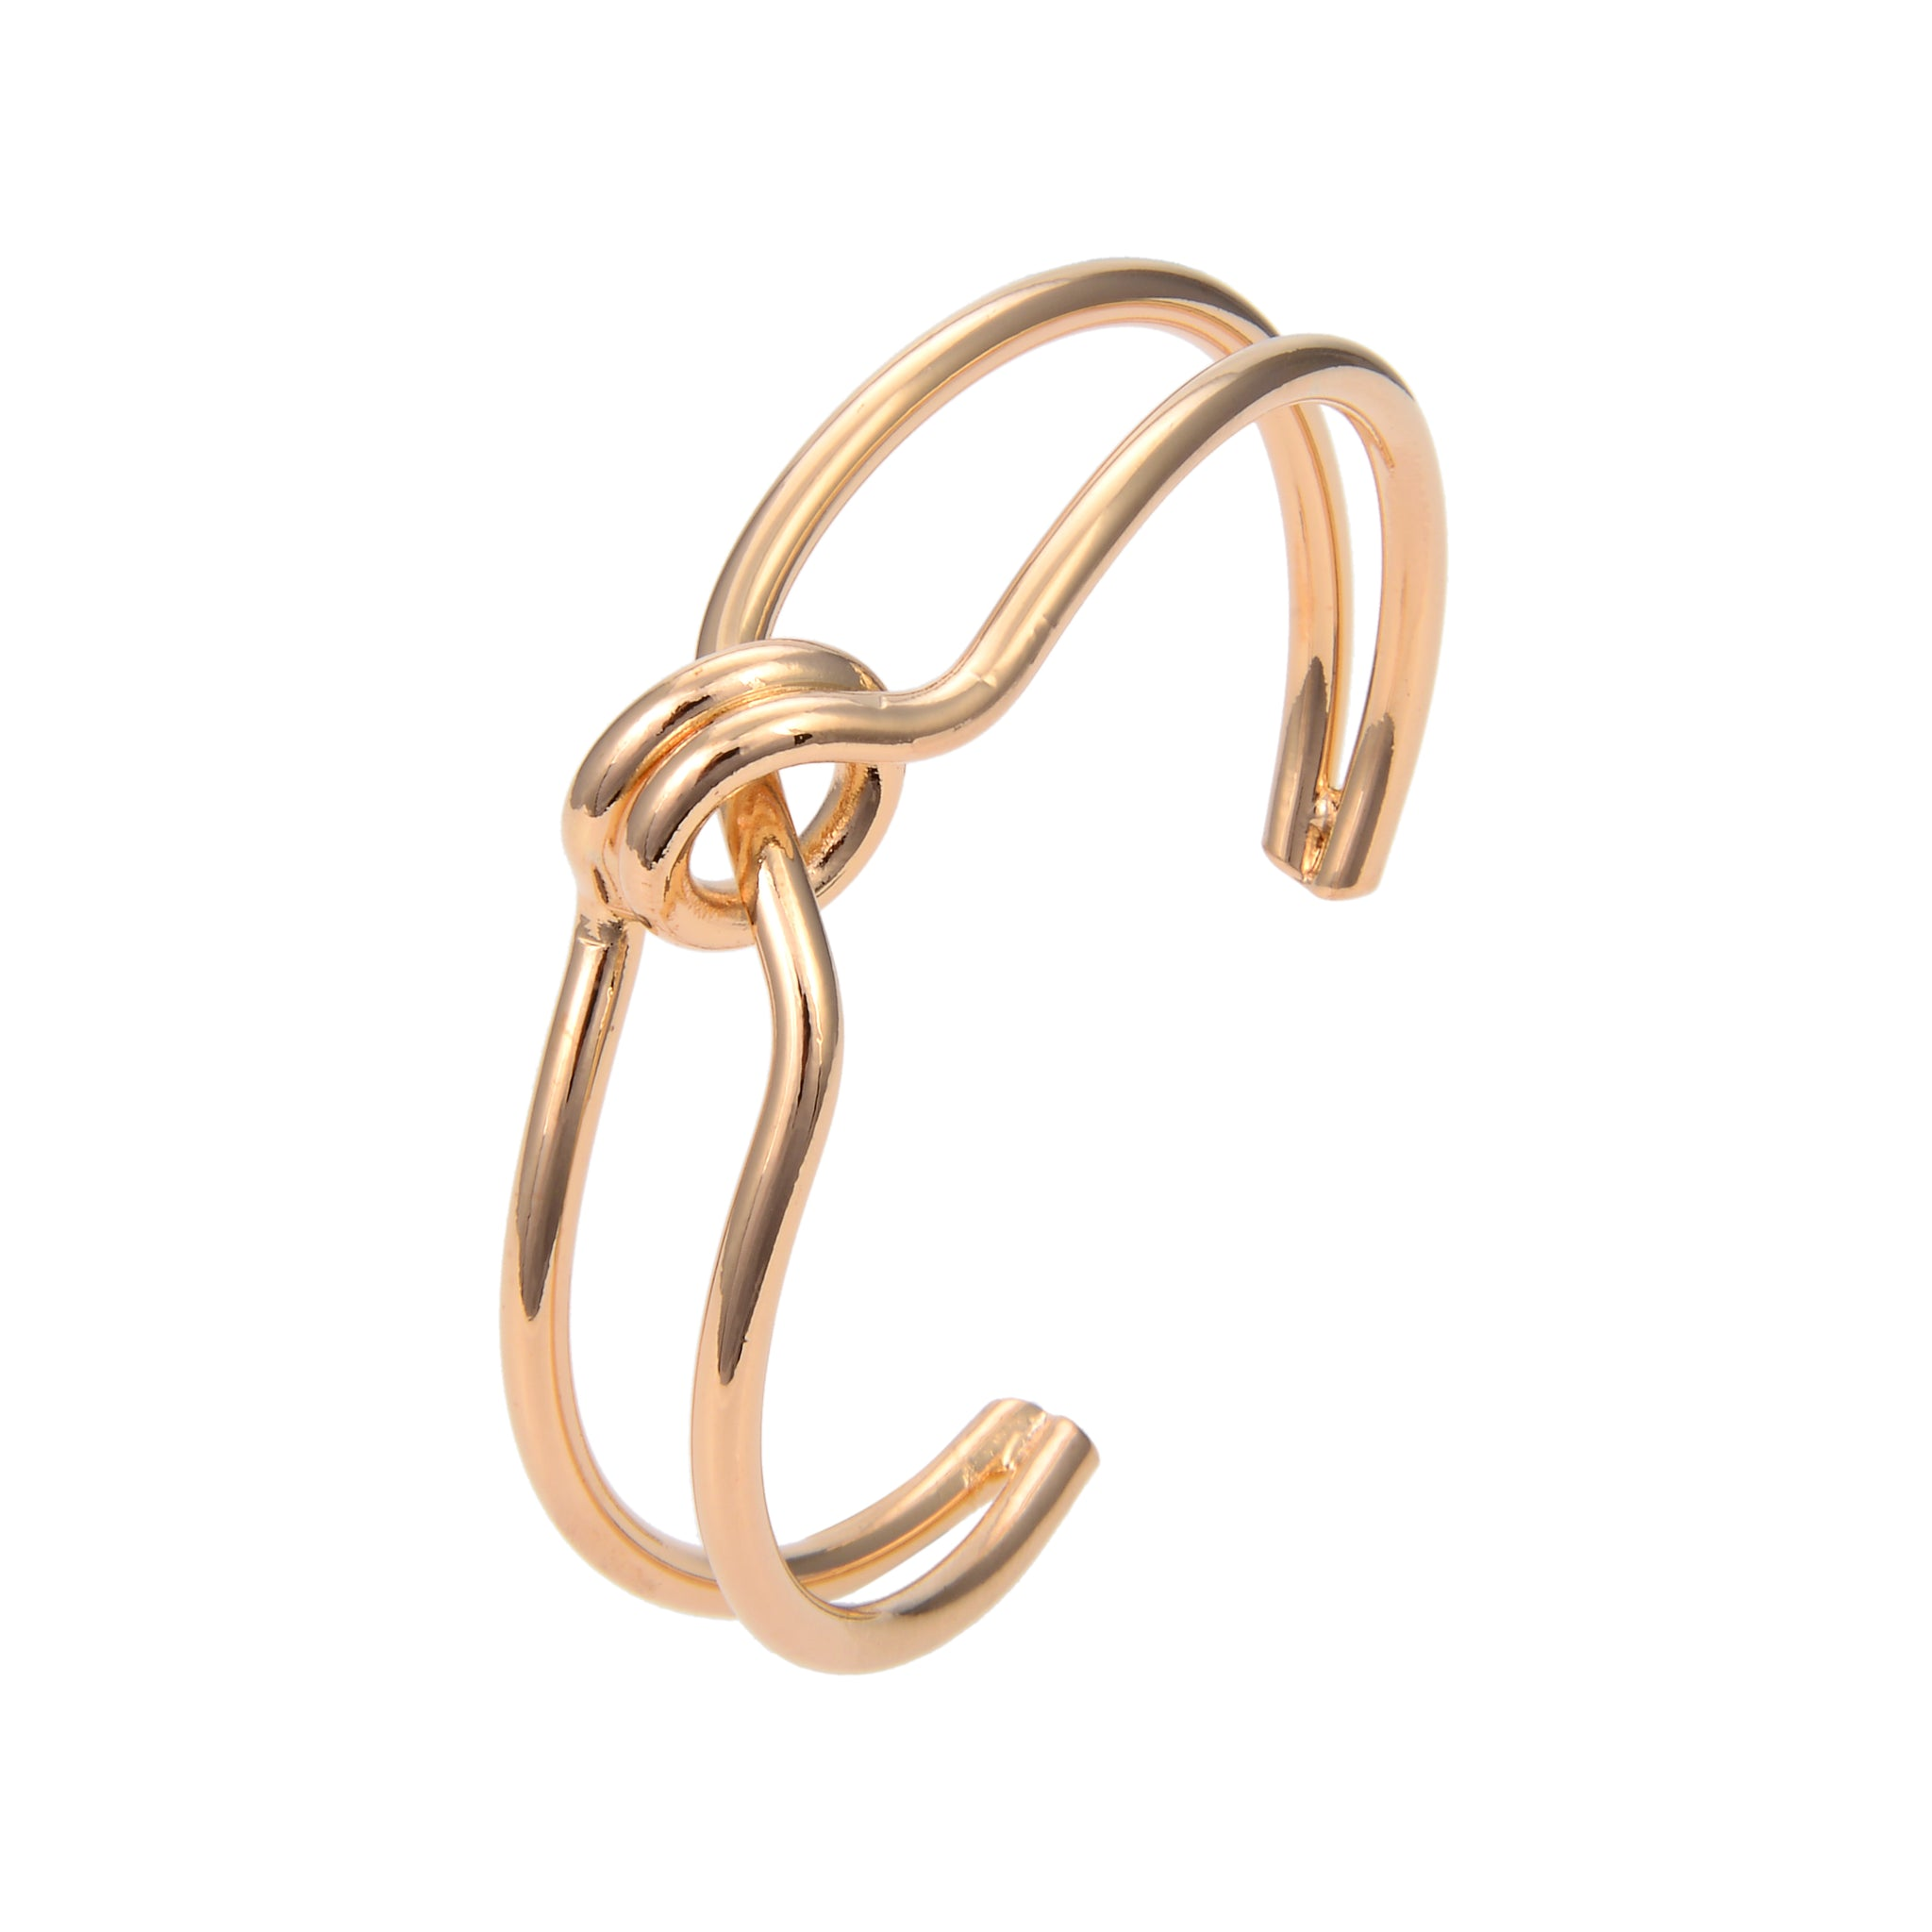 Gold Plated Bangle Bracelet, Gold Plated Geomatric Adjustable Bangle Bracelet